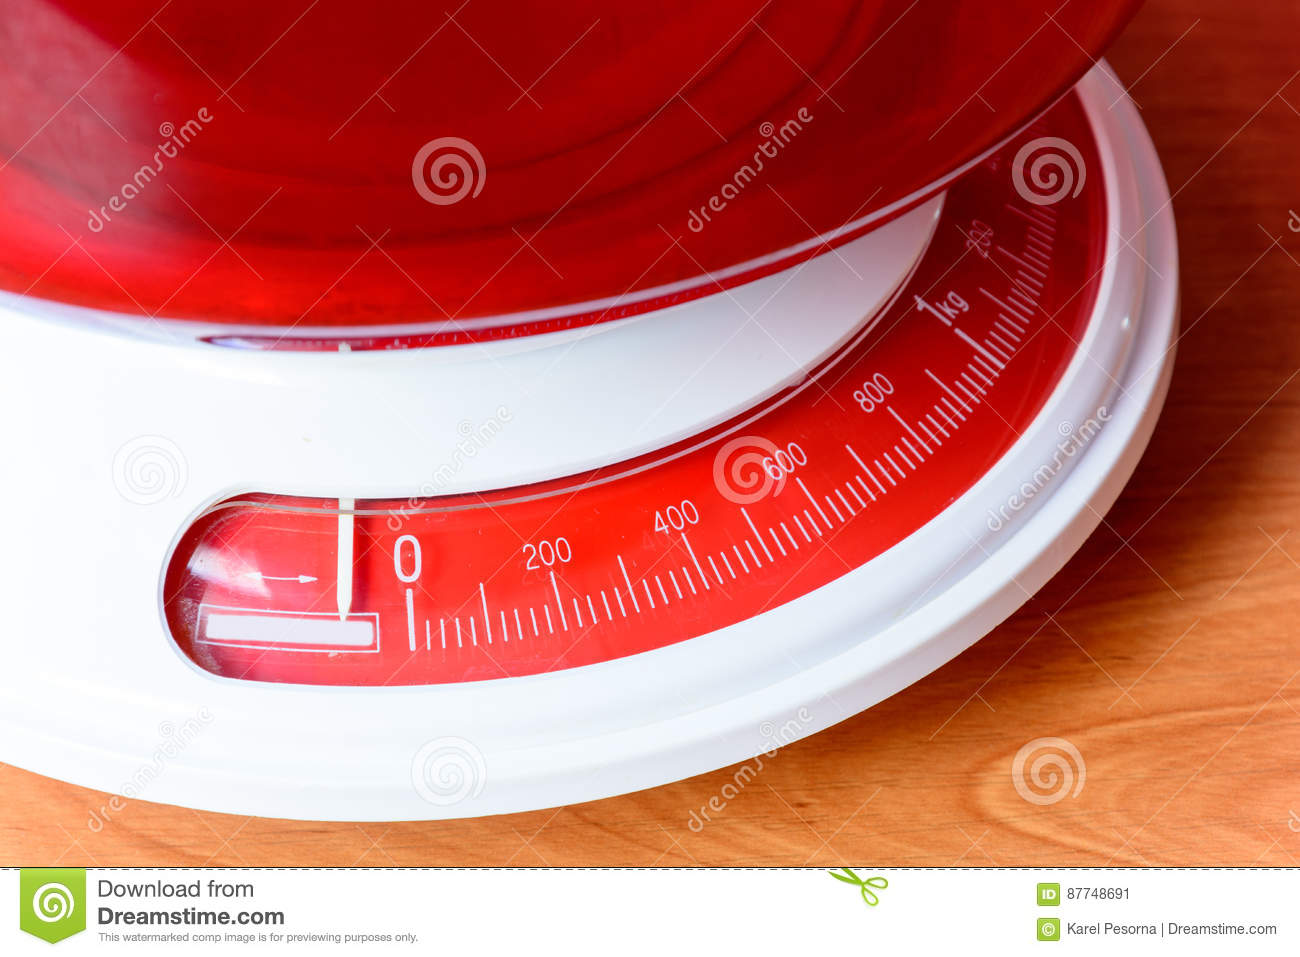 Analog red kitchen scales on the wooden table